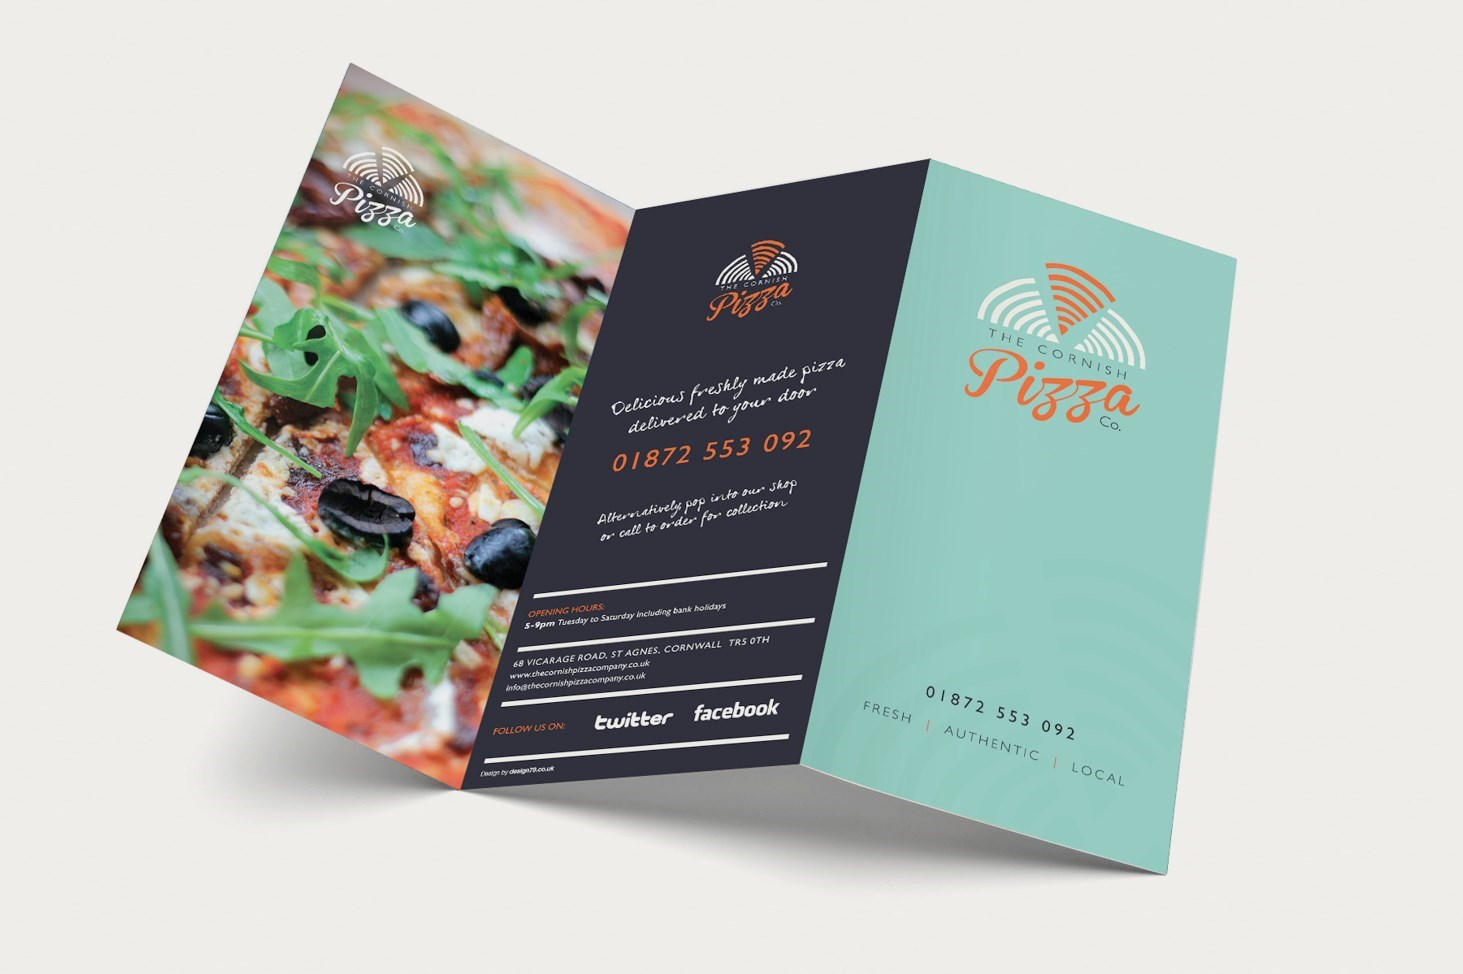 Image of Cornish Pizza Company St Agnes Menu